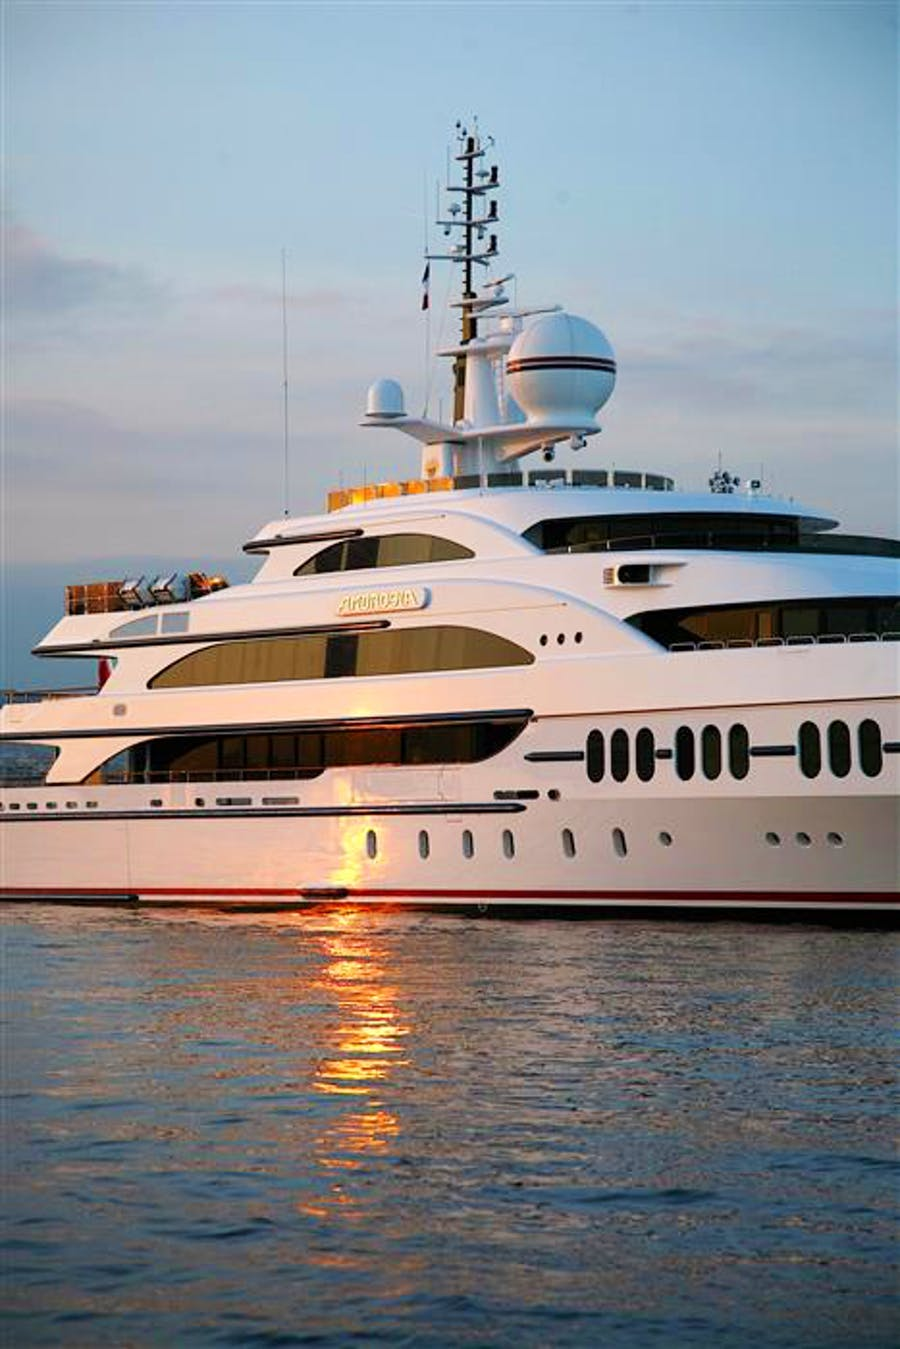 Details for AMBROSIA HYBRID ABB AZIPOD Private Luxury Yacht For sale